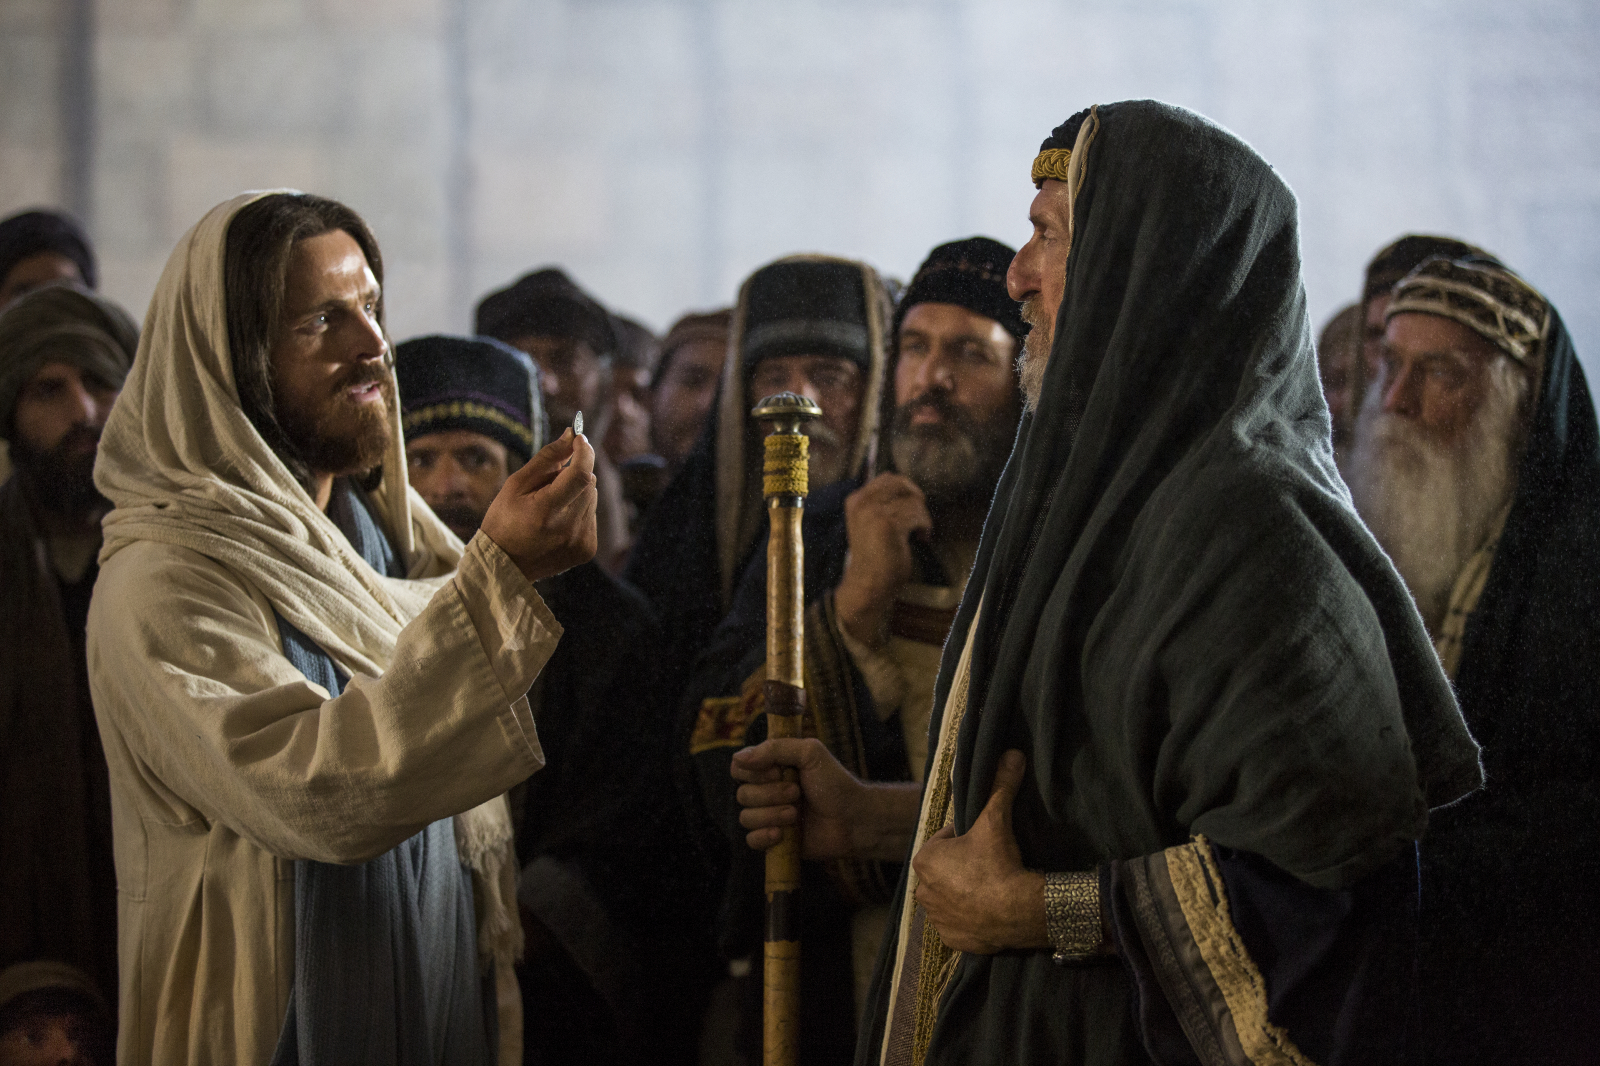 pharisees and jesus relationship